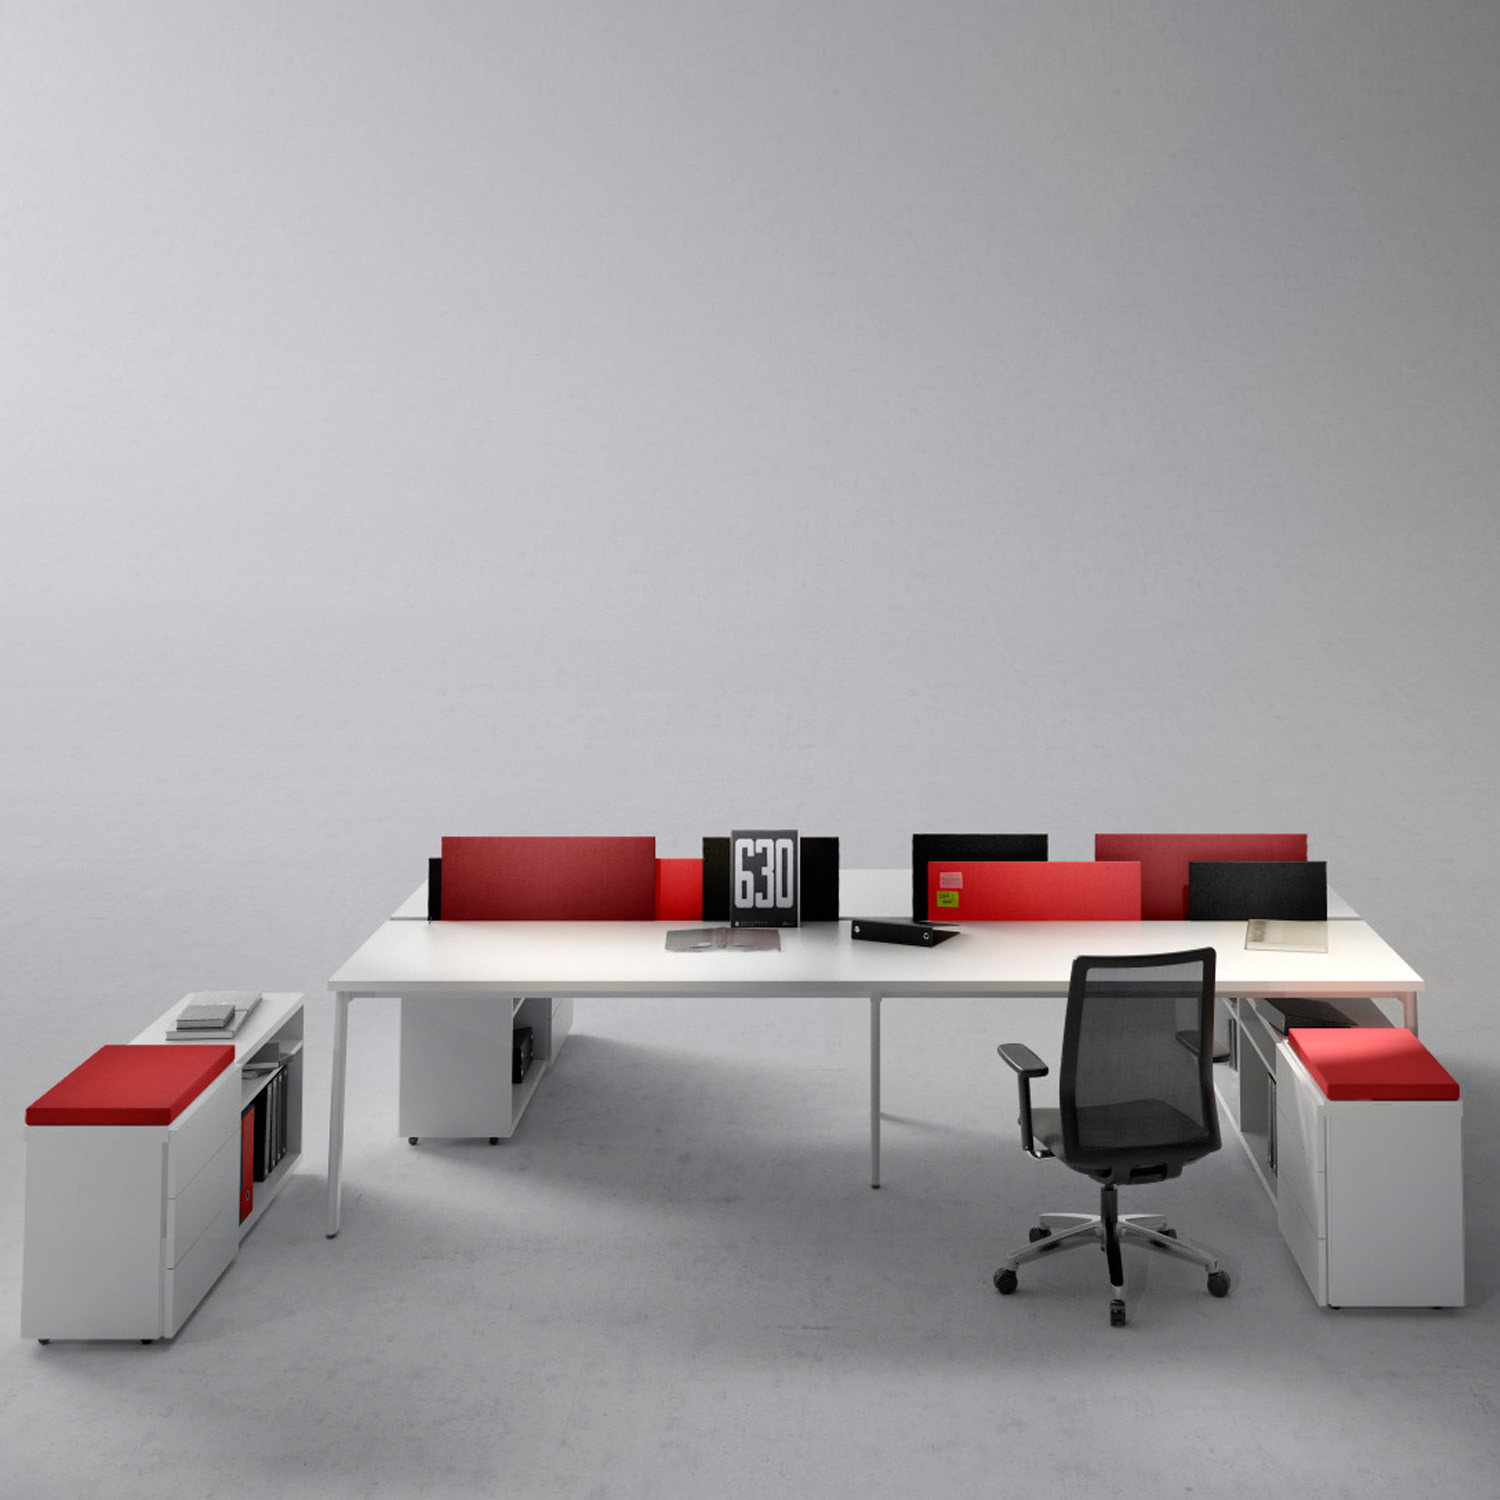 M10 Bench Desk by Forma 5